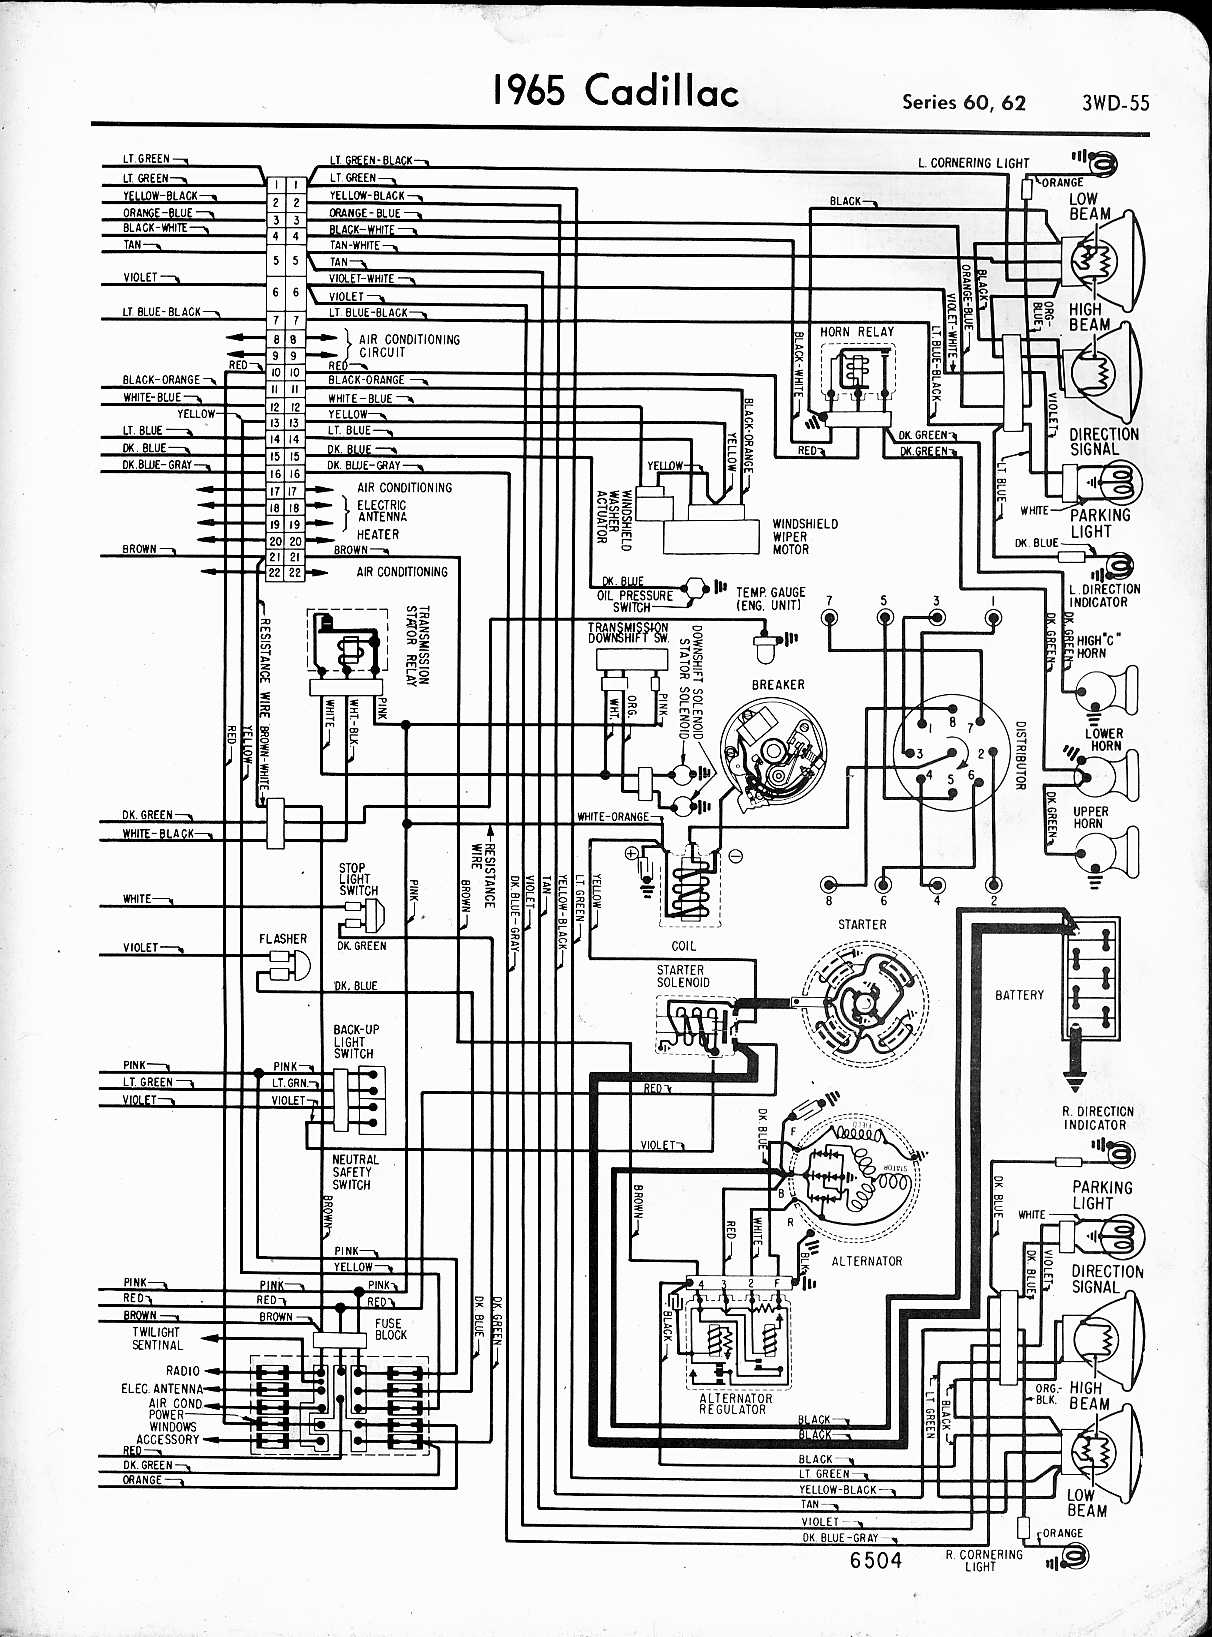 1962 Cadillac Wiring Diagram Online Fuse Box 2002 Escalade Electrical Diagrams Scematic Deville Stereo